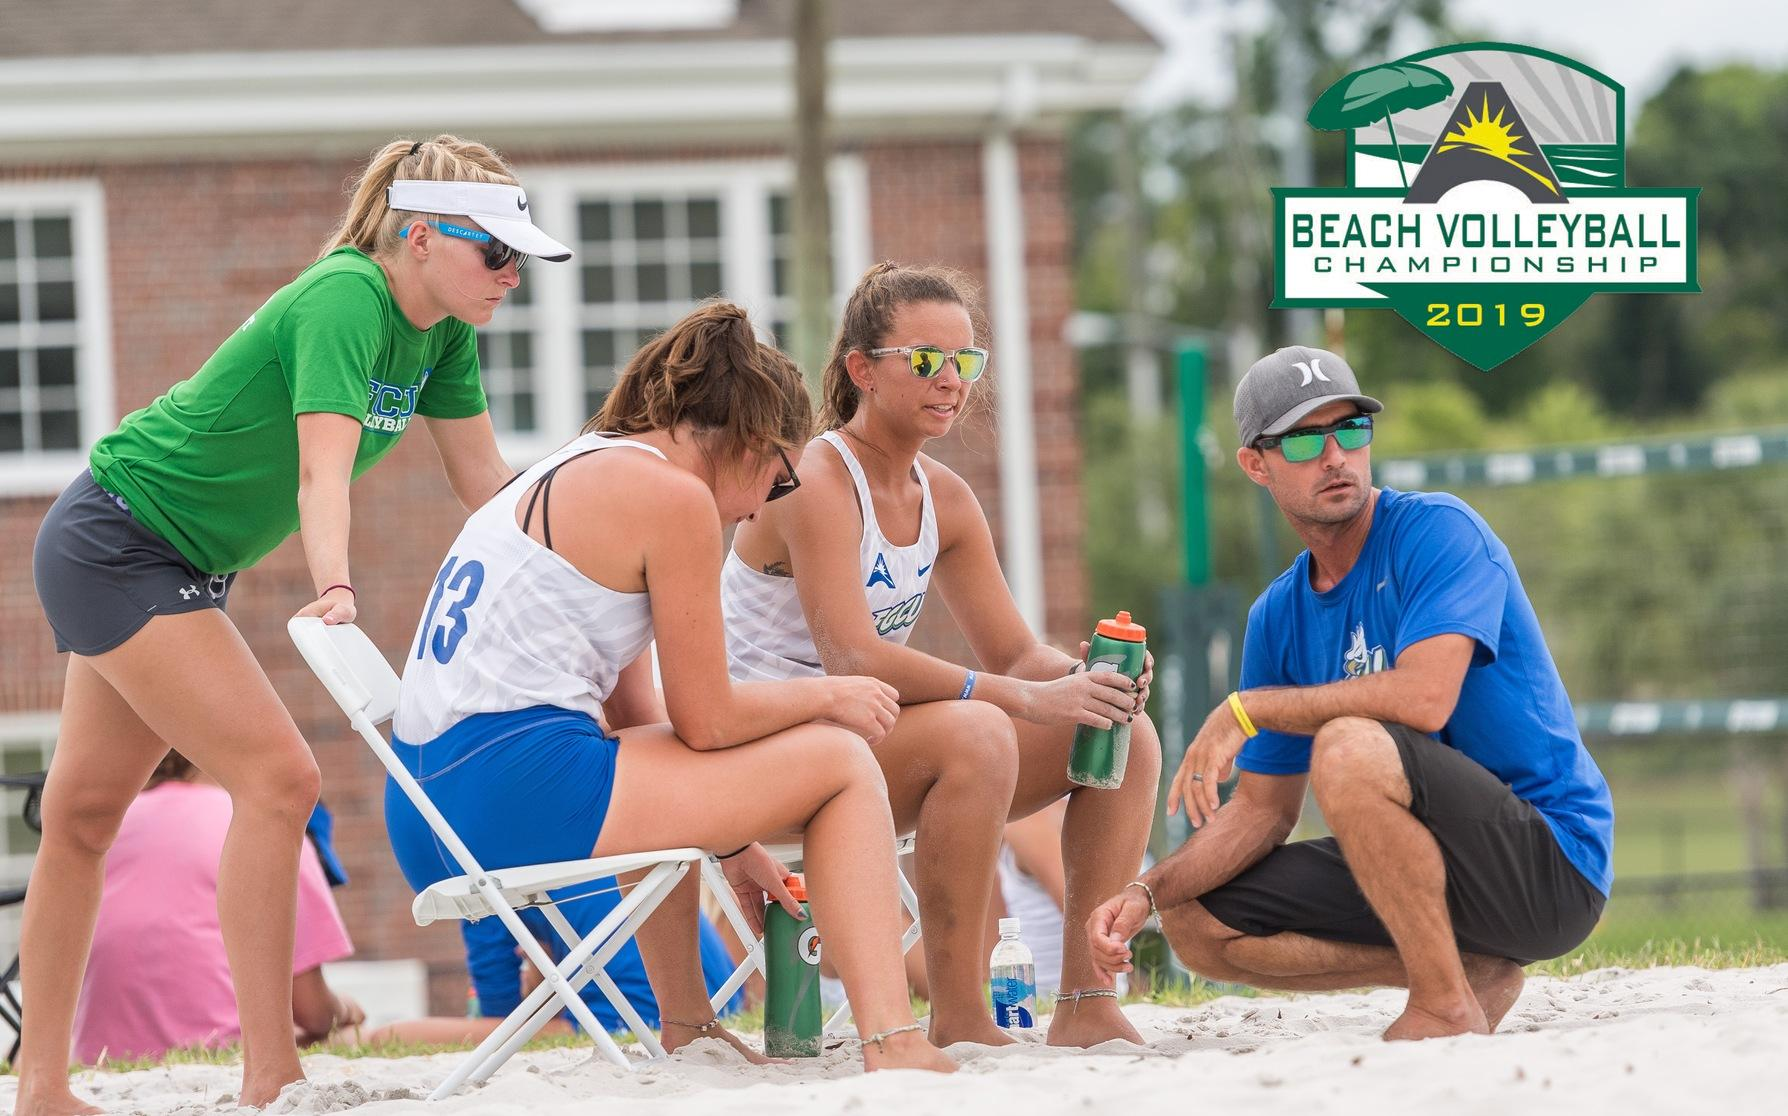 FGCU Downs Coastal Carolina to Move on in #ASUNBVB Championship